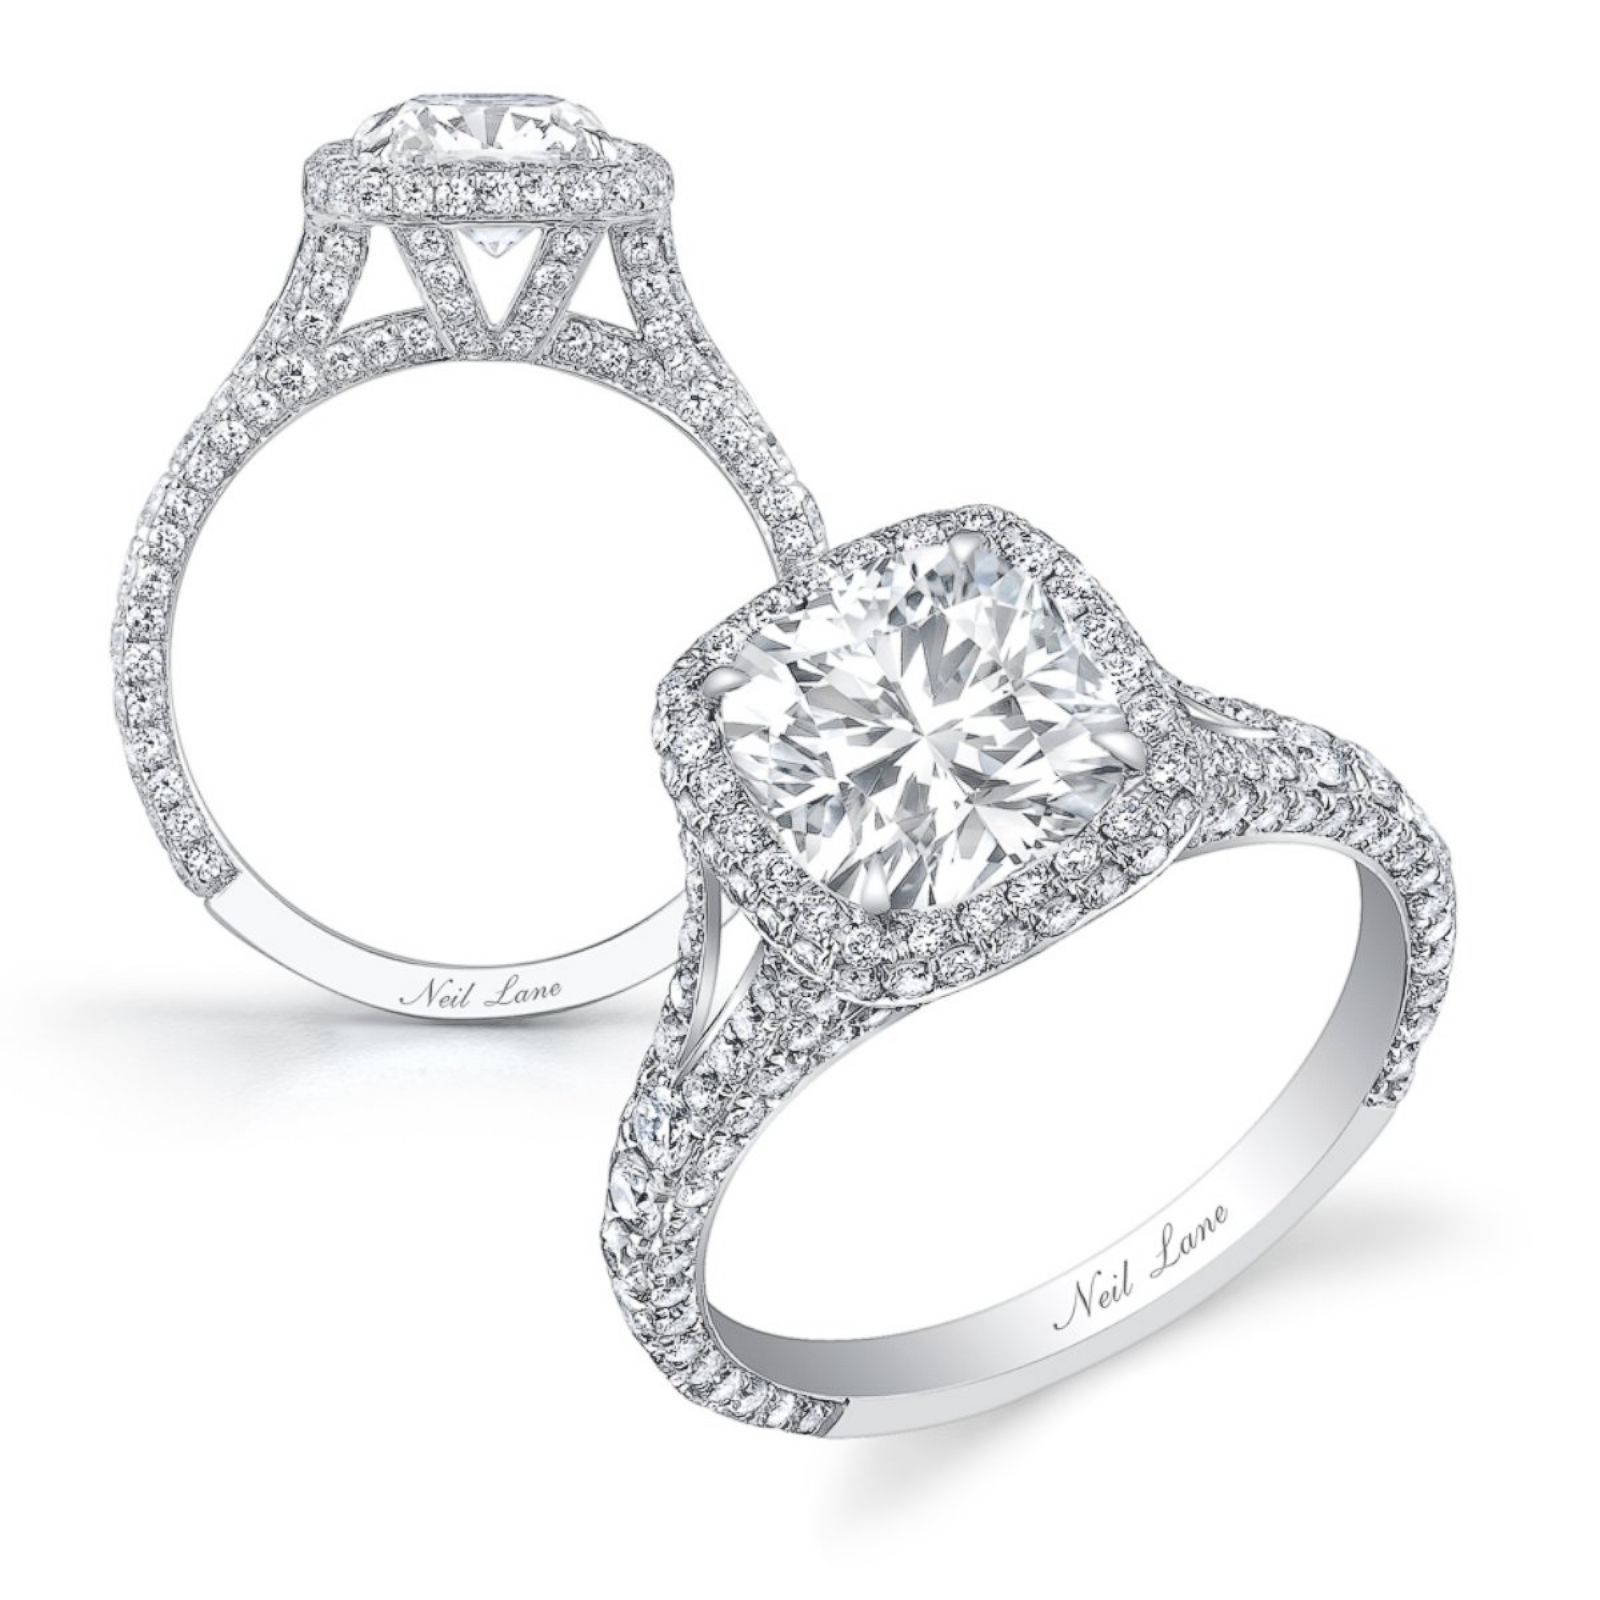 A history of Bachelor and Bachelorette engagement rings s